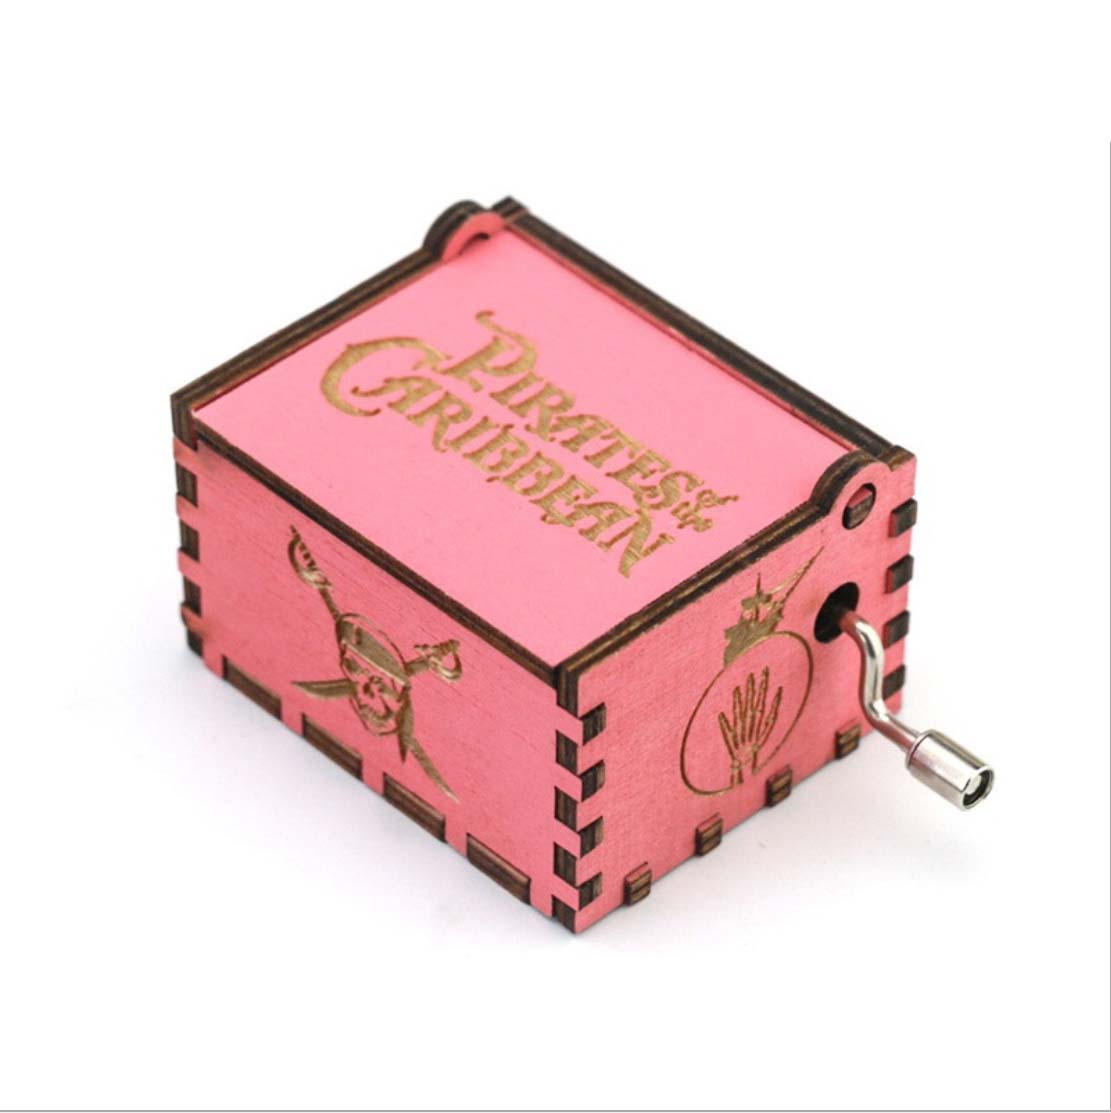 Game of Thrones Wooden Music Box Pirates of the Carib Harri Potter Pink Theme Christmas Gift Wood Anime Music Box Dropshipping in Music Boxes from Home Garden